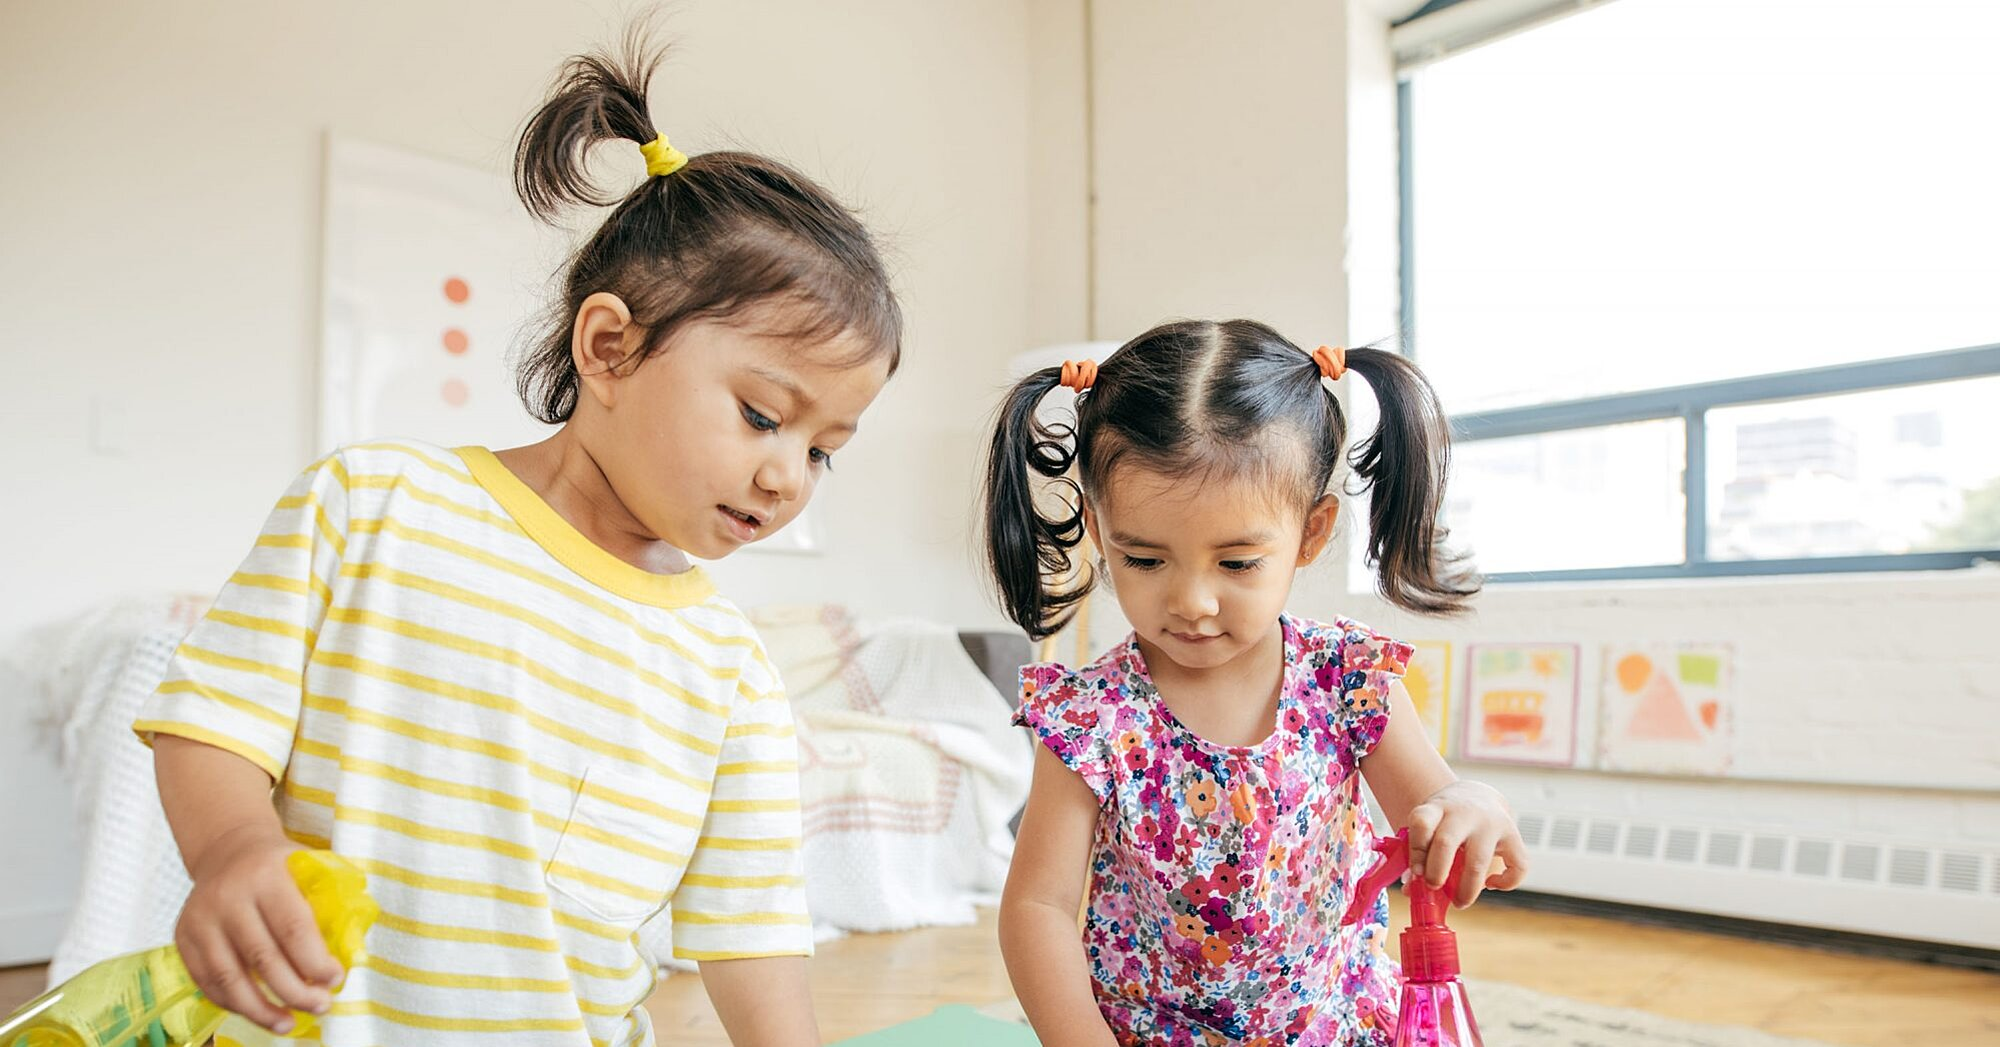 7 Ways to Get Your Kids to Help Clean Up